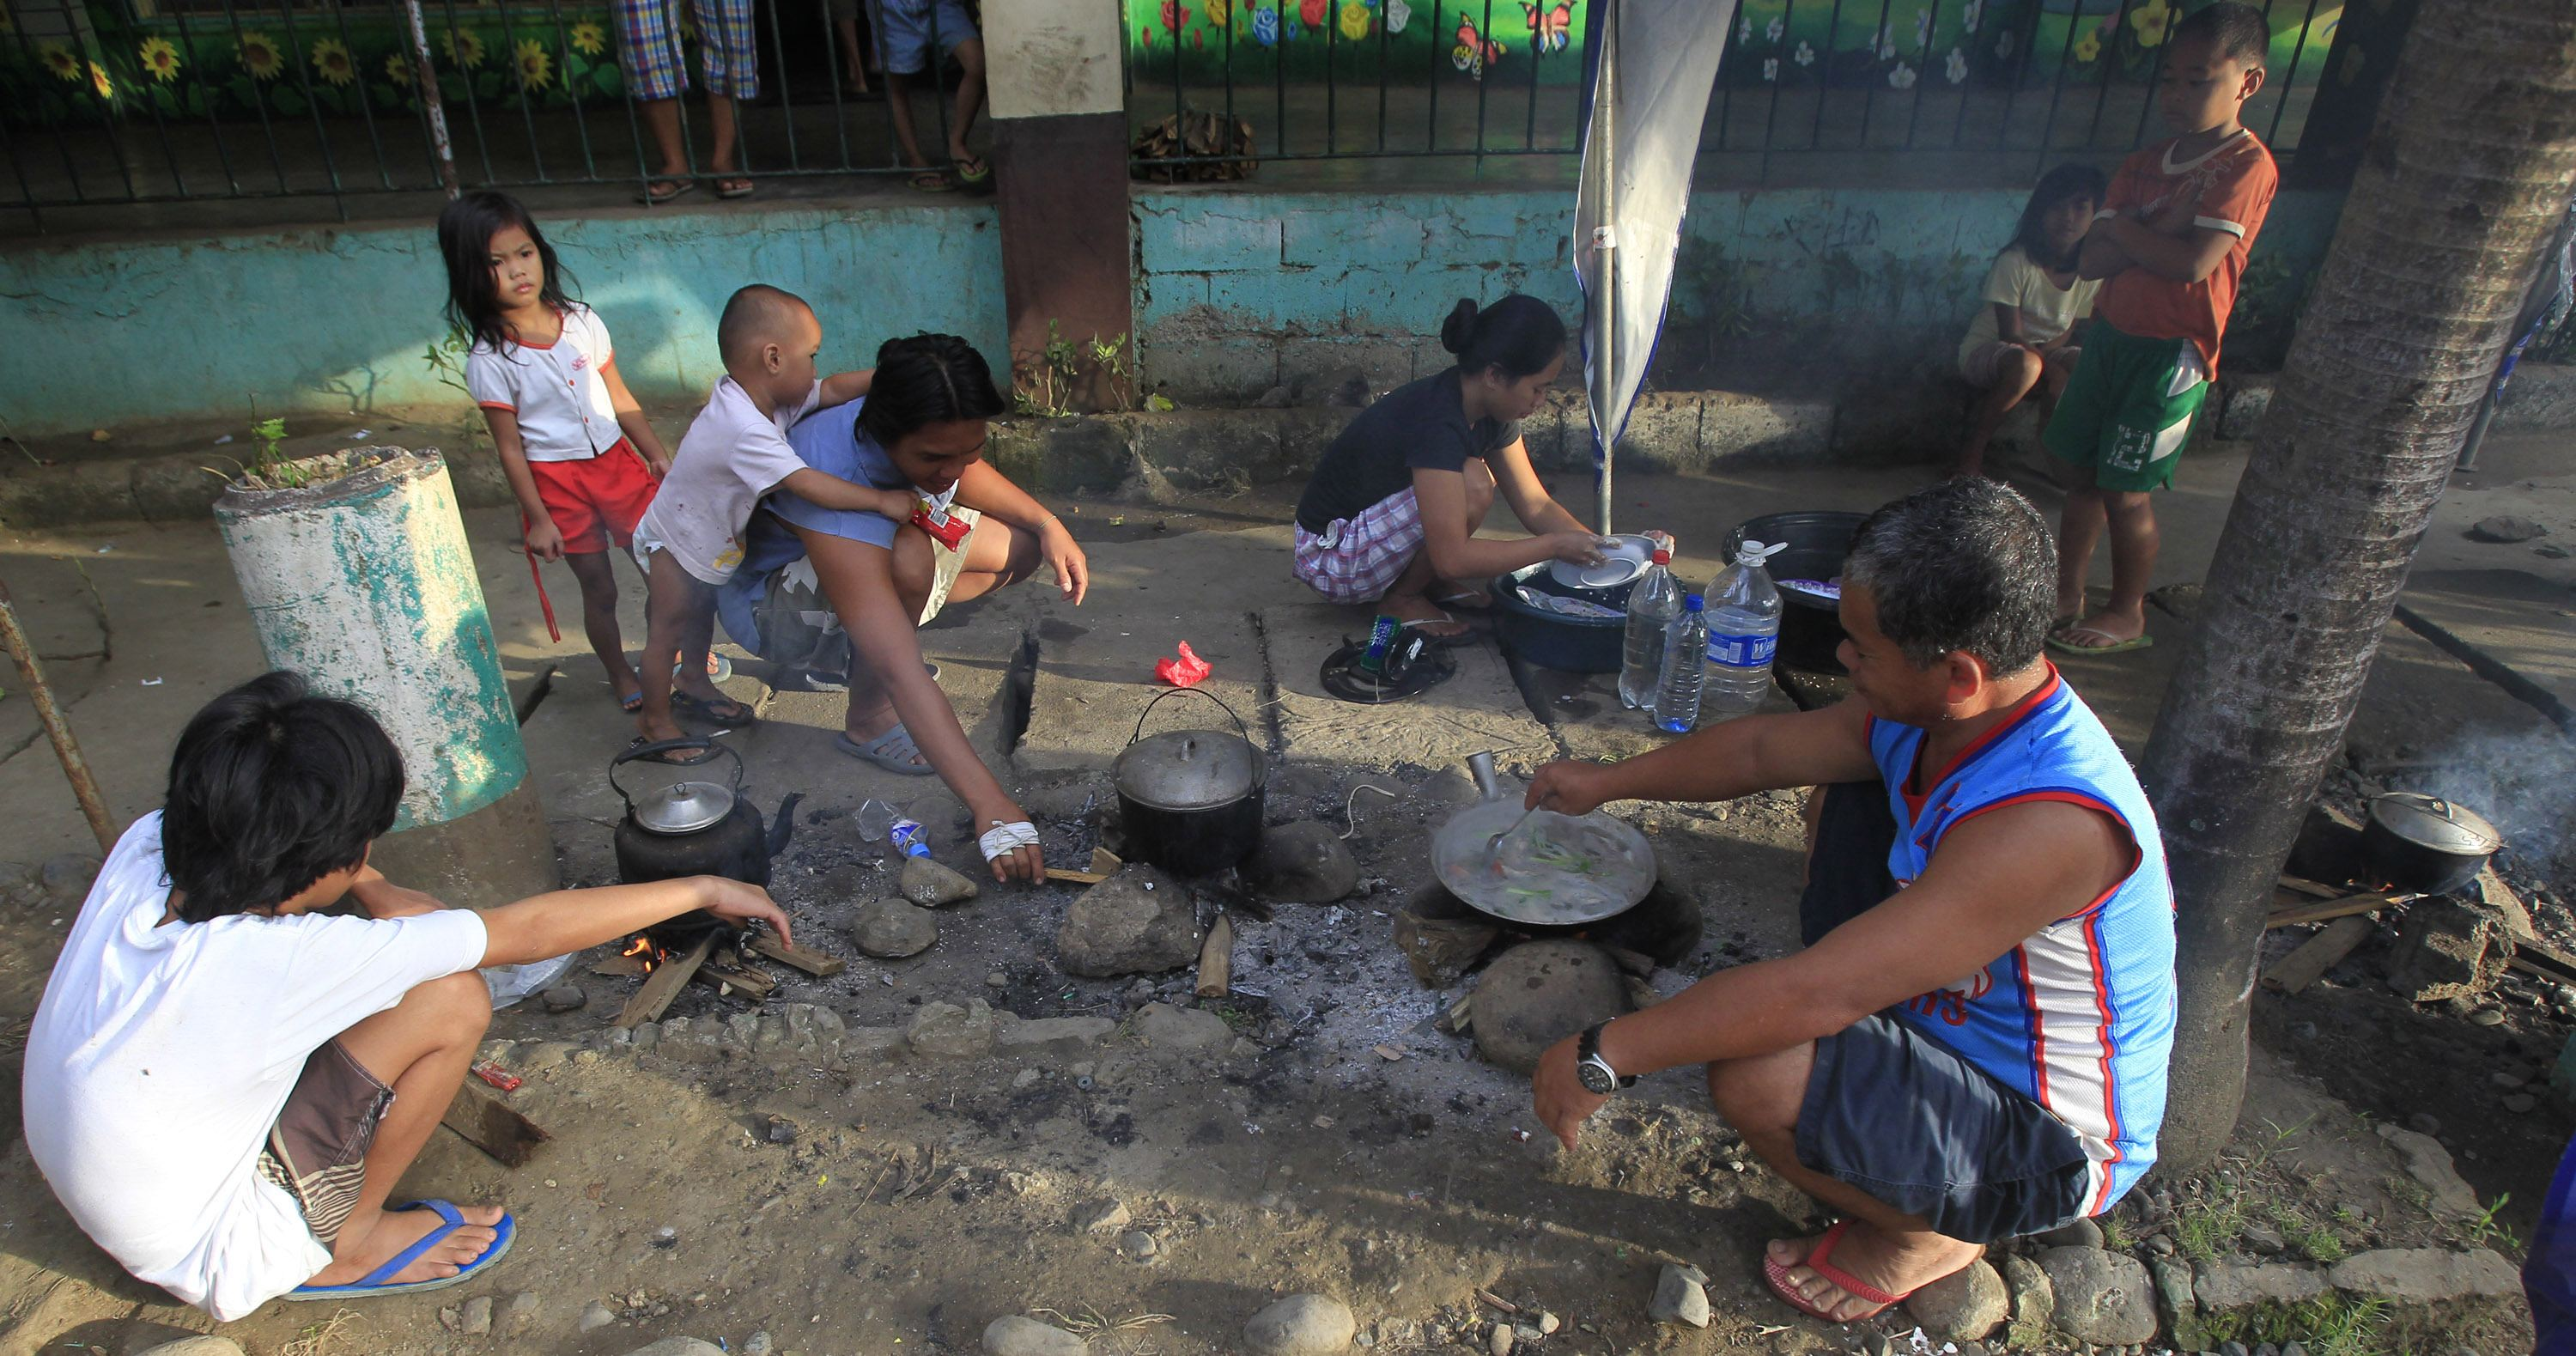 Homeless Typhoon Washi survivors cook their meal on school grounds in Cagayan de Oro